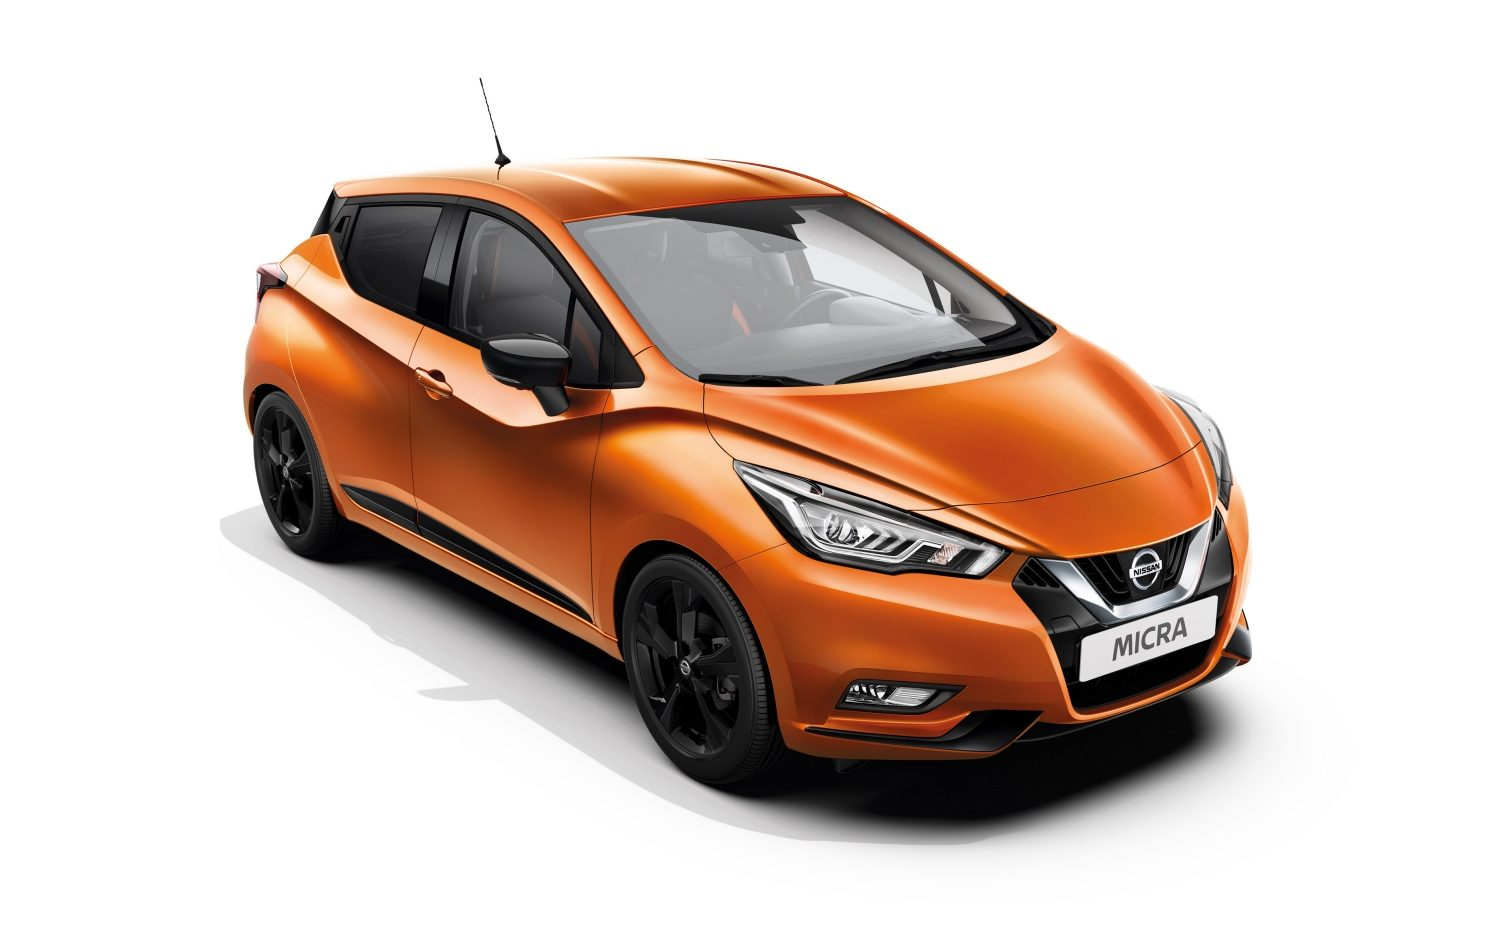 Nissan MICRA 1,0-liters benzin, udvendigt i orange